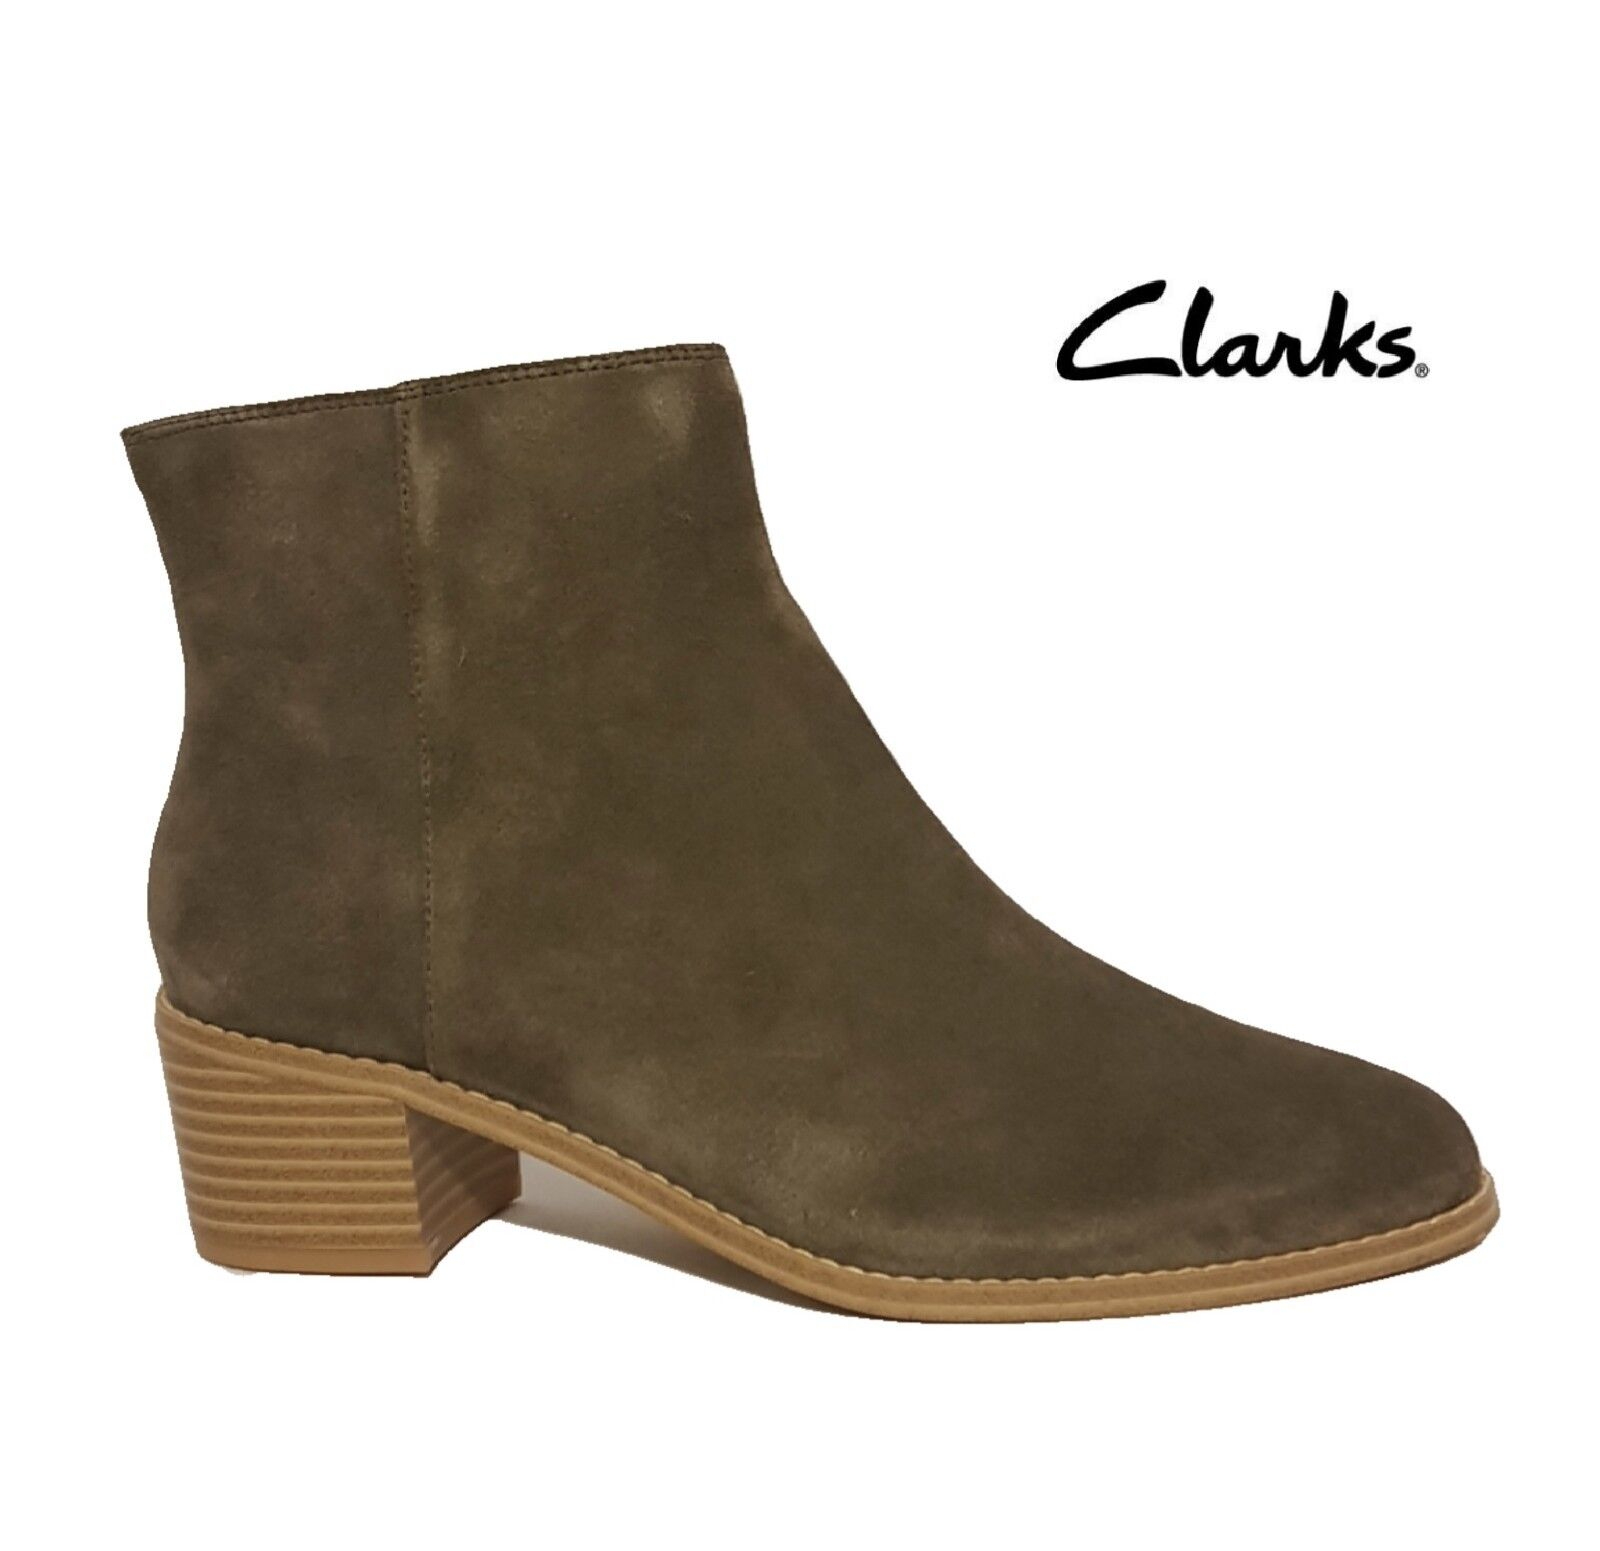 CLARKS BRECCAN MYTH   KHAKI GREEN GREY SUEDE LEATHER ANKLE BOOTS LADIES